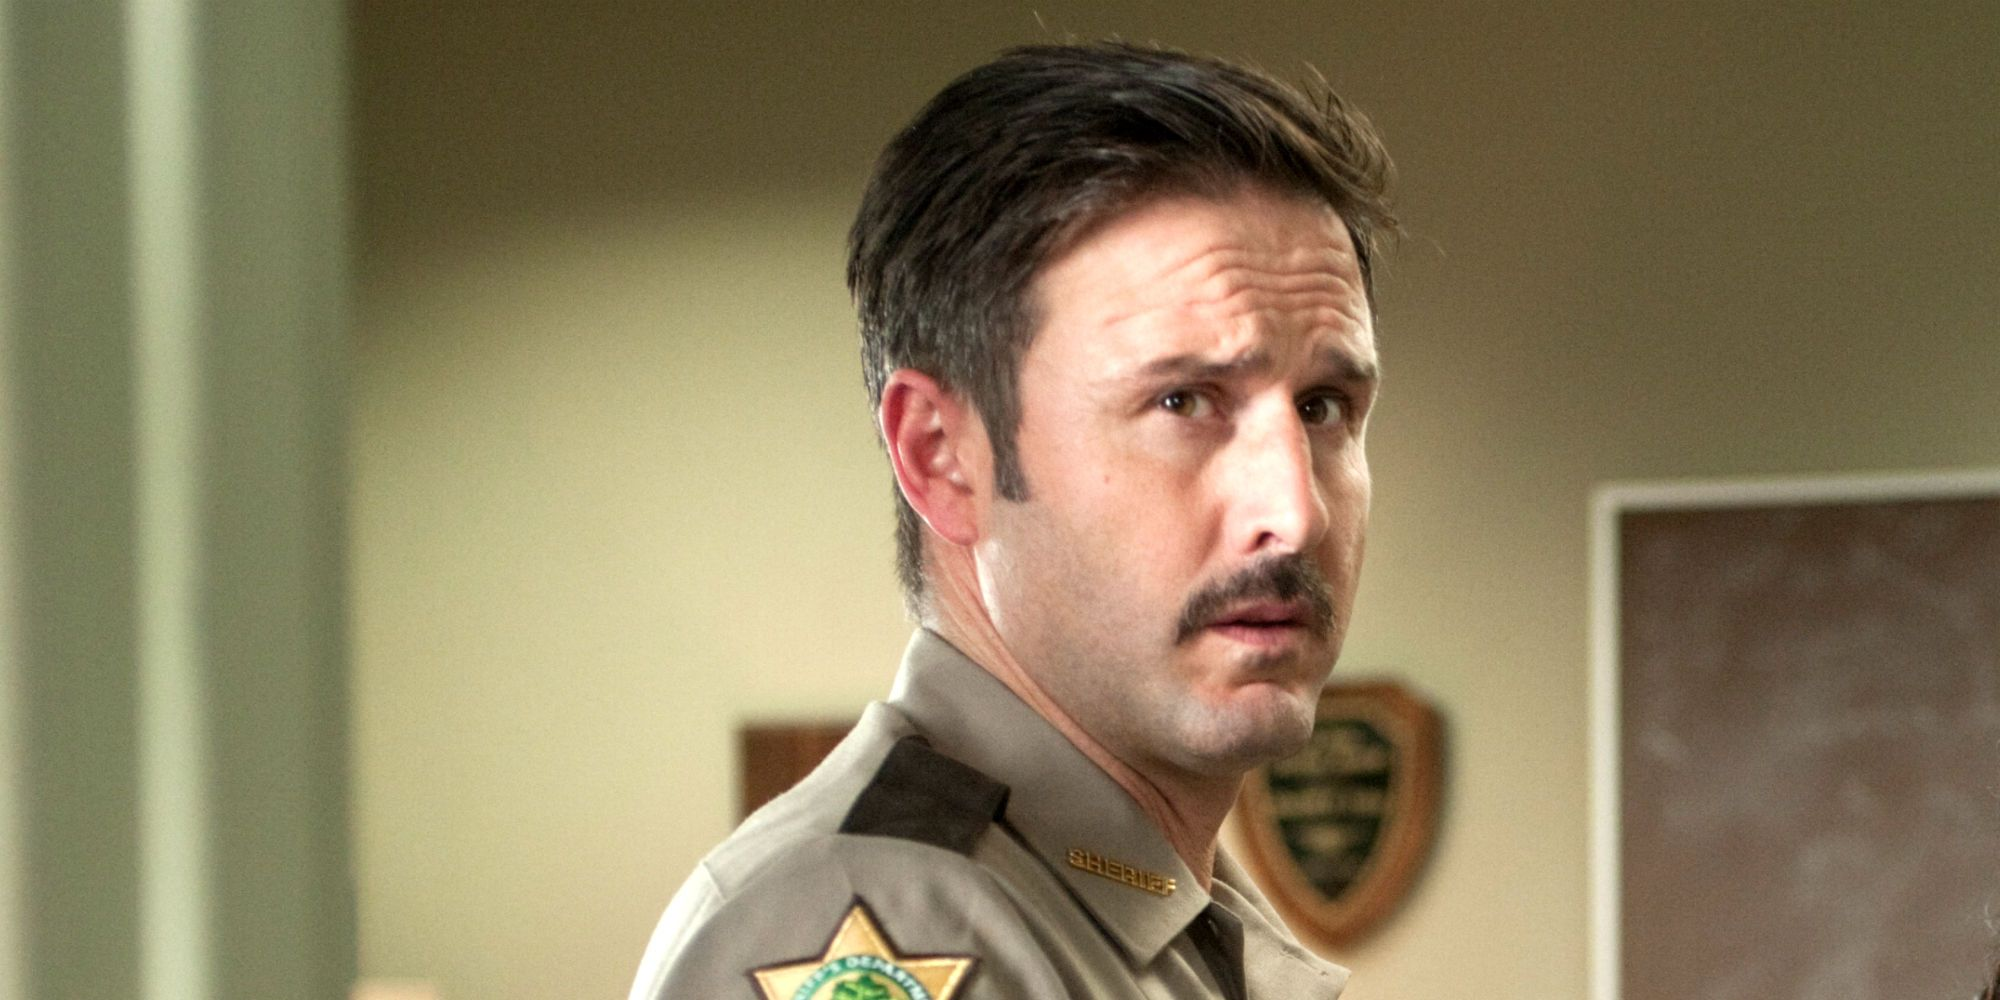 Arquette reprising iconic role in new Scream movie""